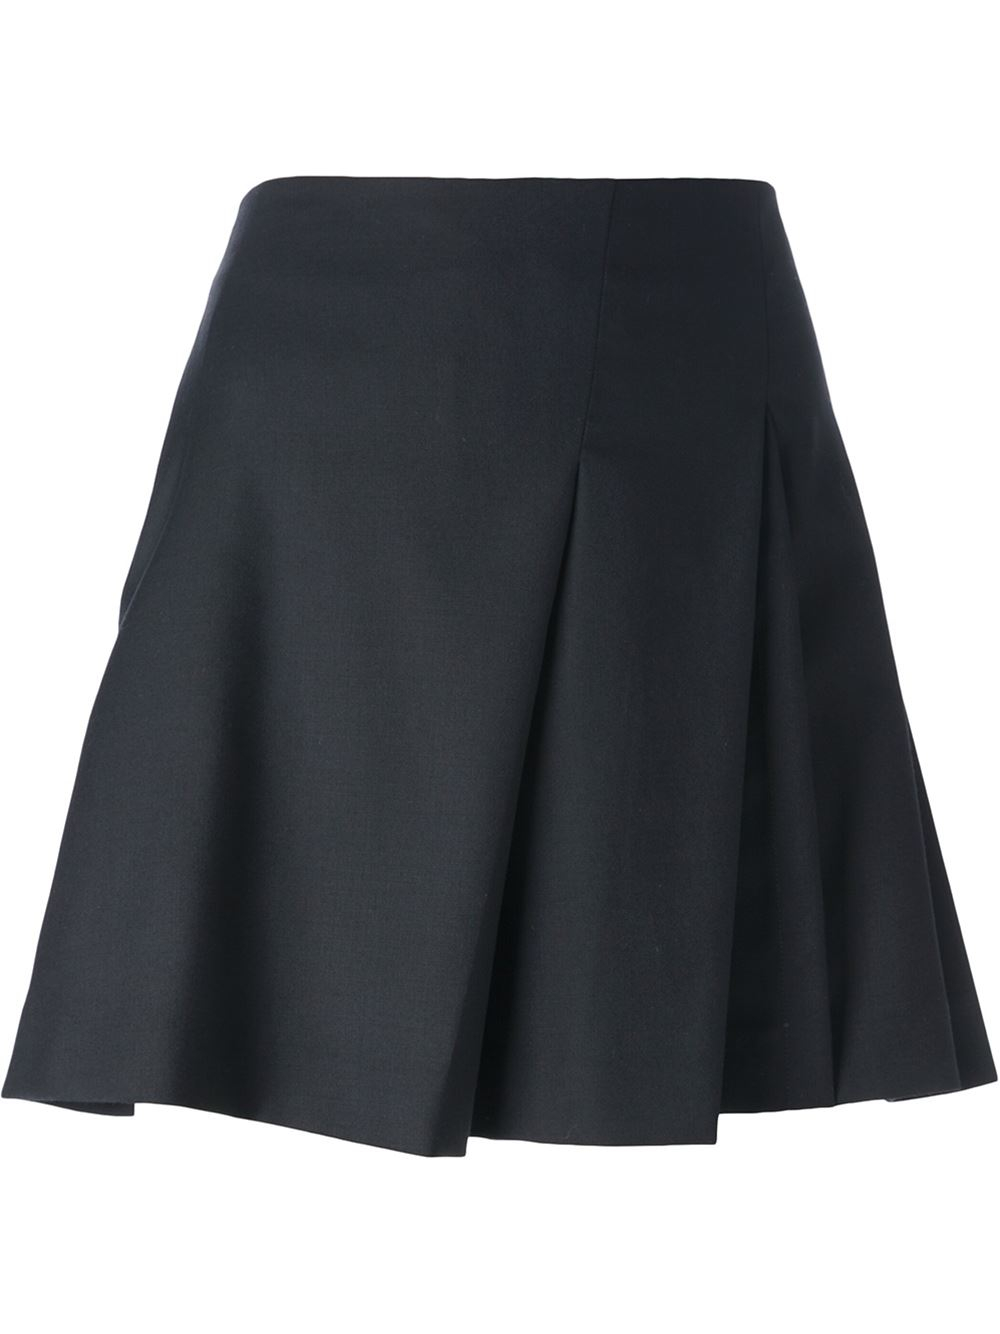 school pleated skirt in black lyst